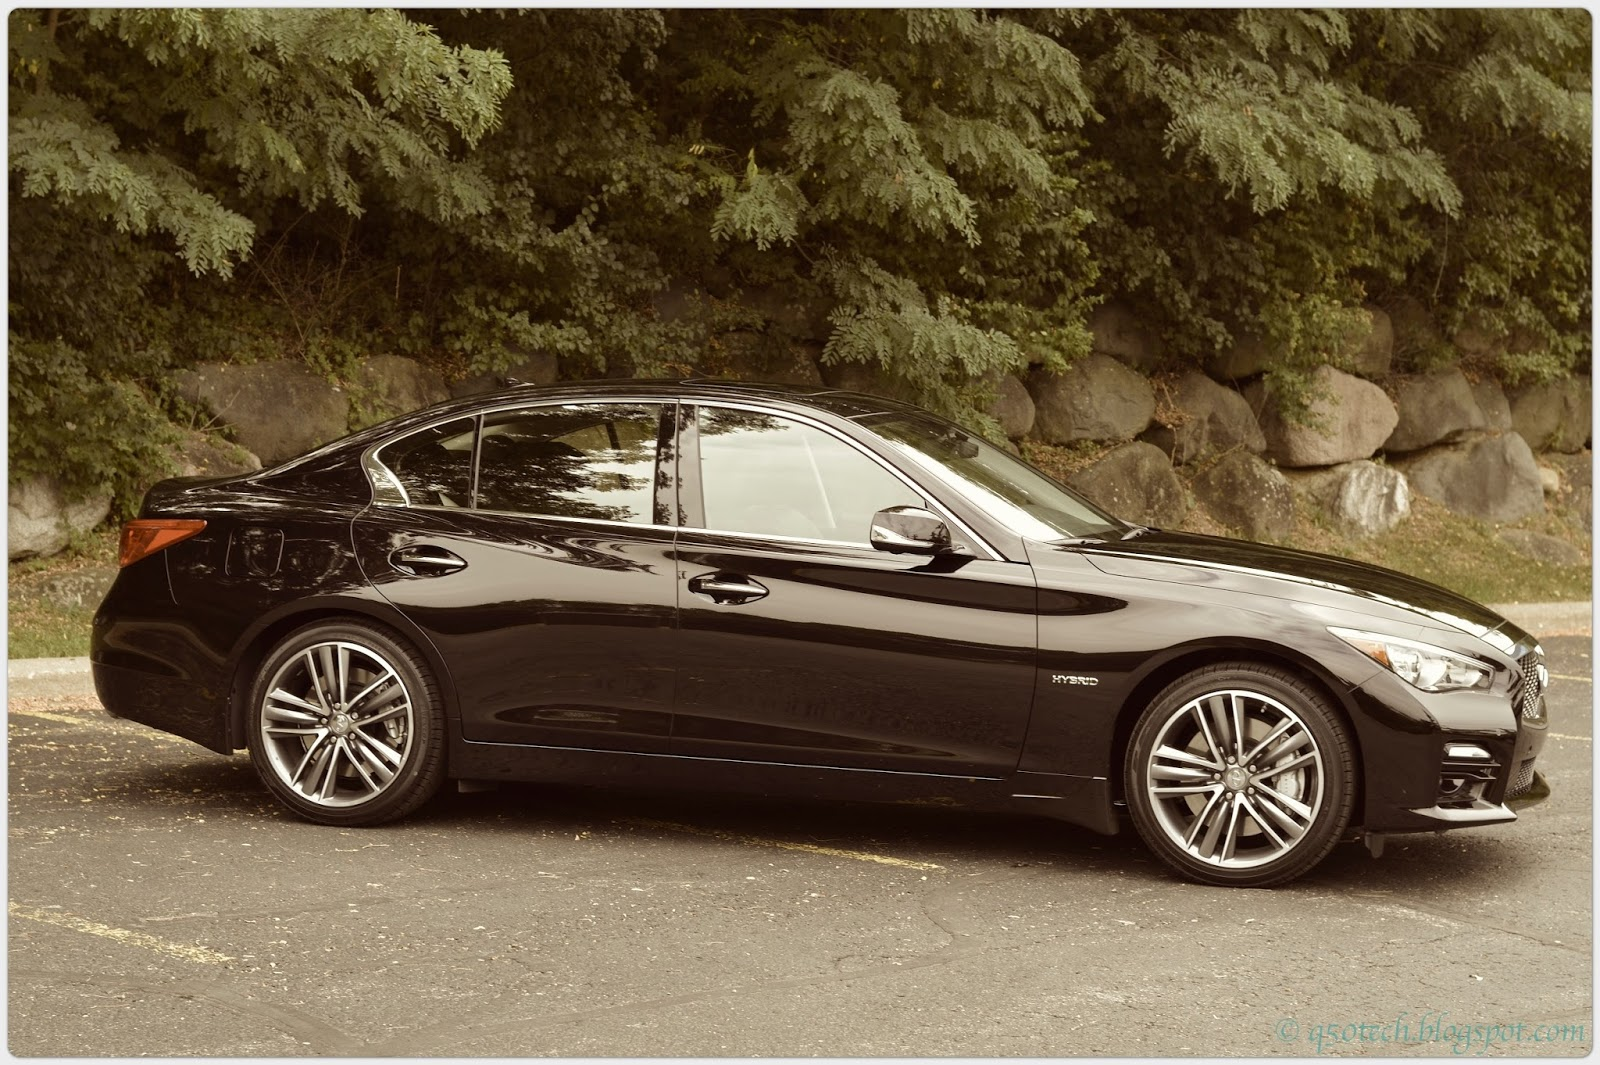 Infiniti Q50 Technical Amp Operational Blog Photo Shoot Of